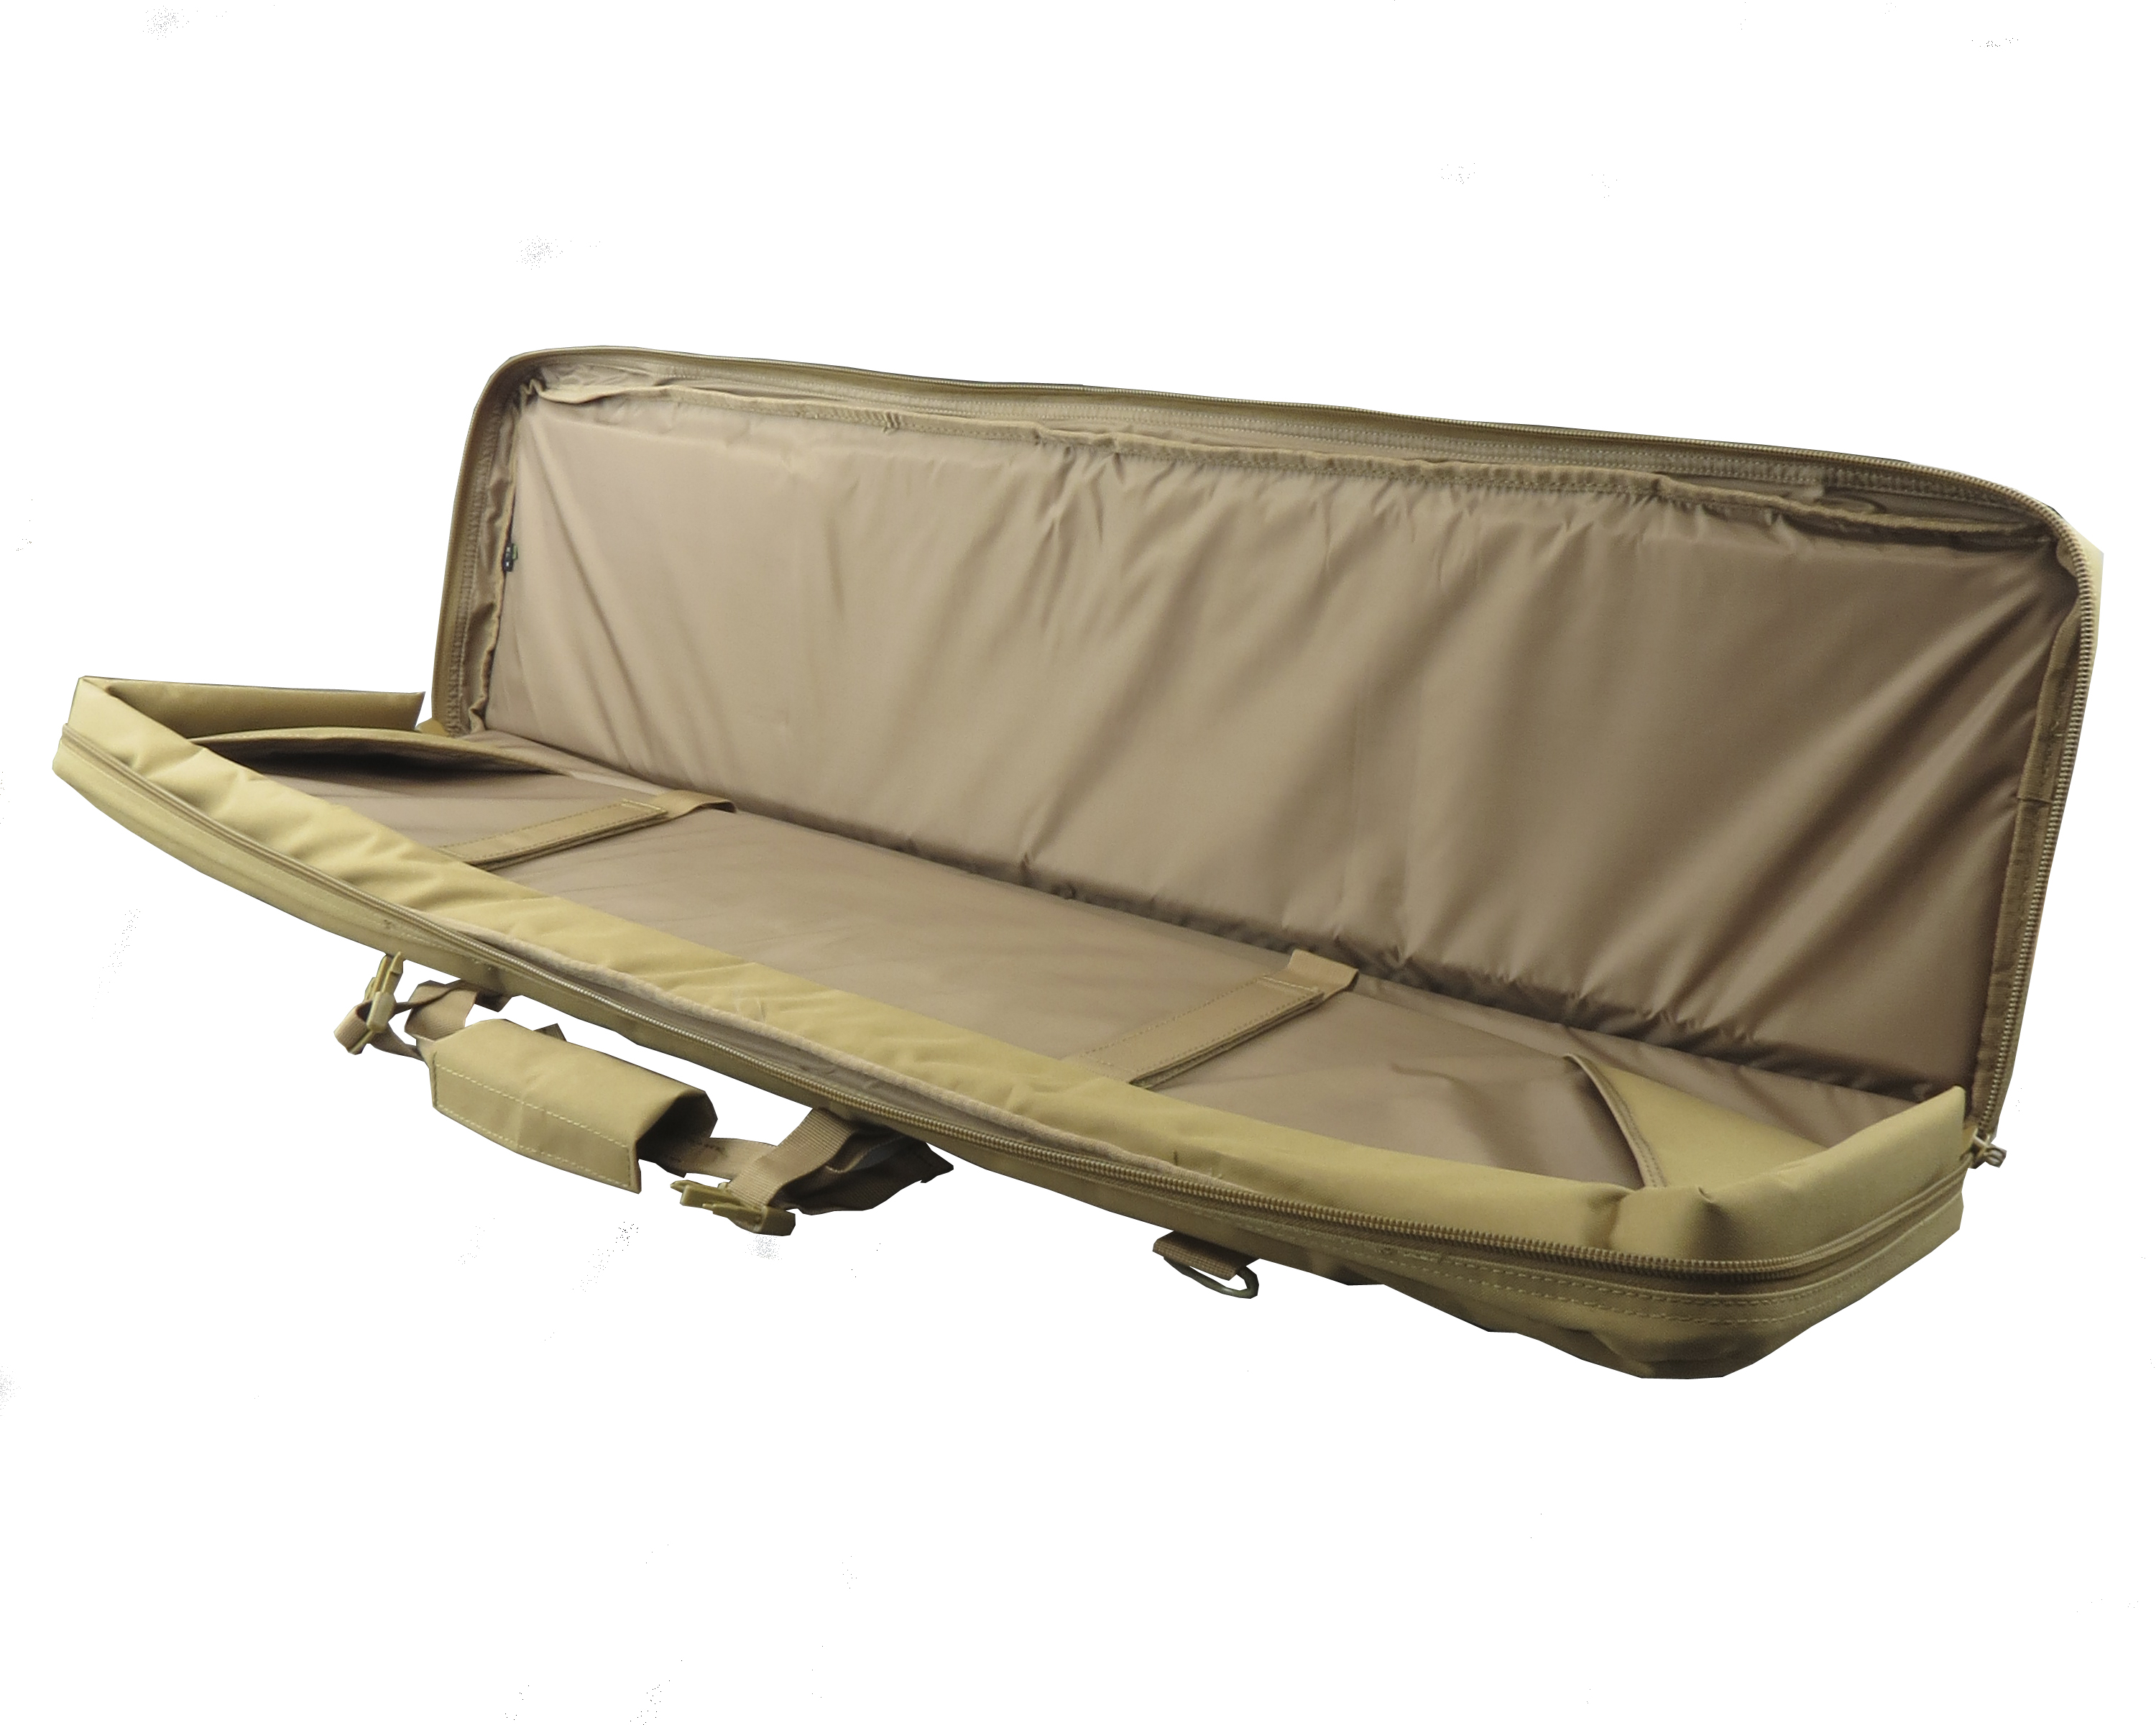 condor_42_single_rifle_case_view_3.jpg